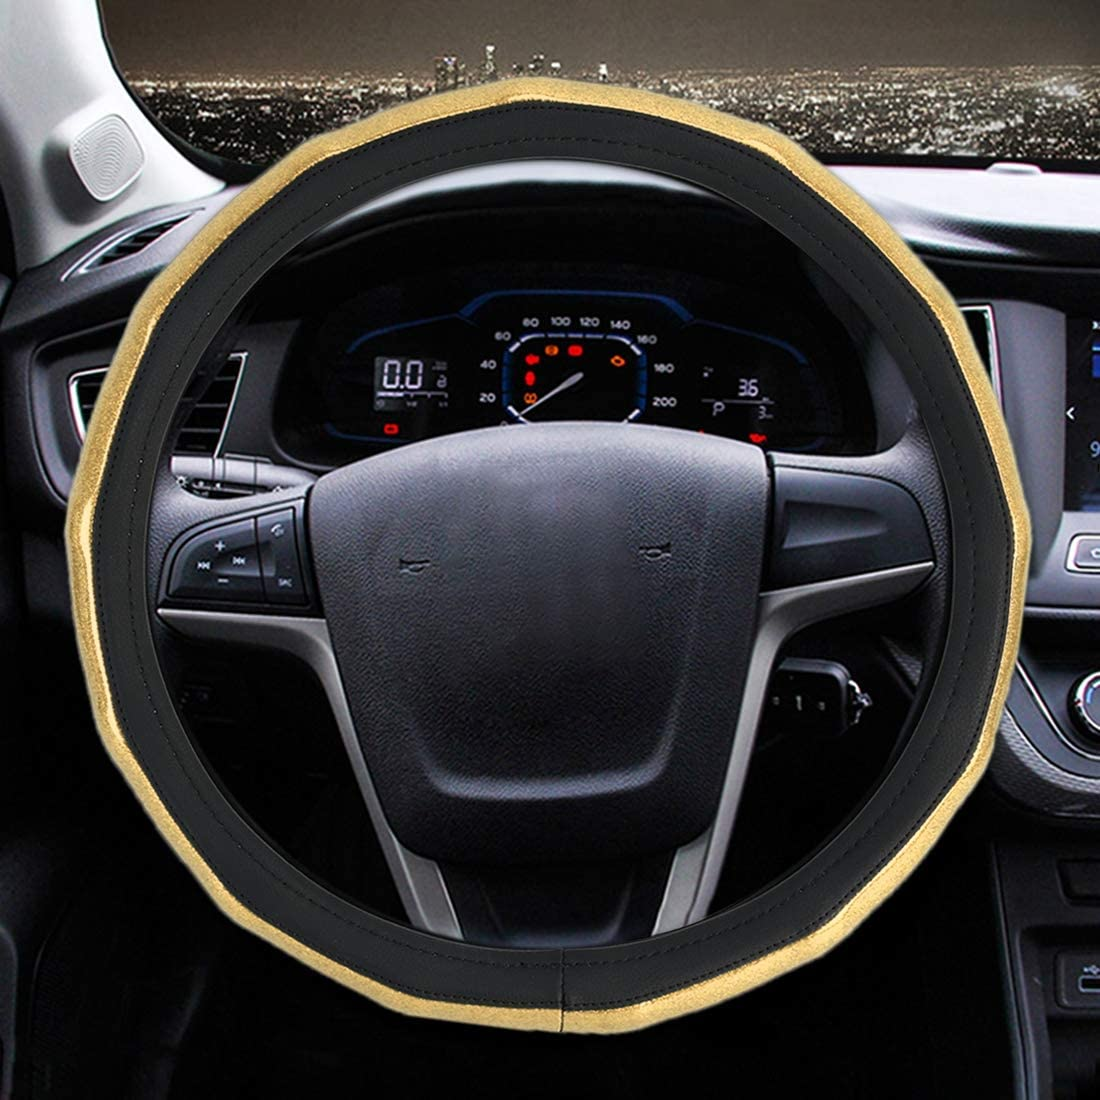 JINPART Car Accessories Universal 25% OFF Knot Plating Bamboo List price Leathe